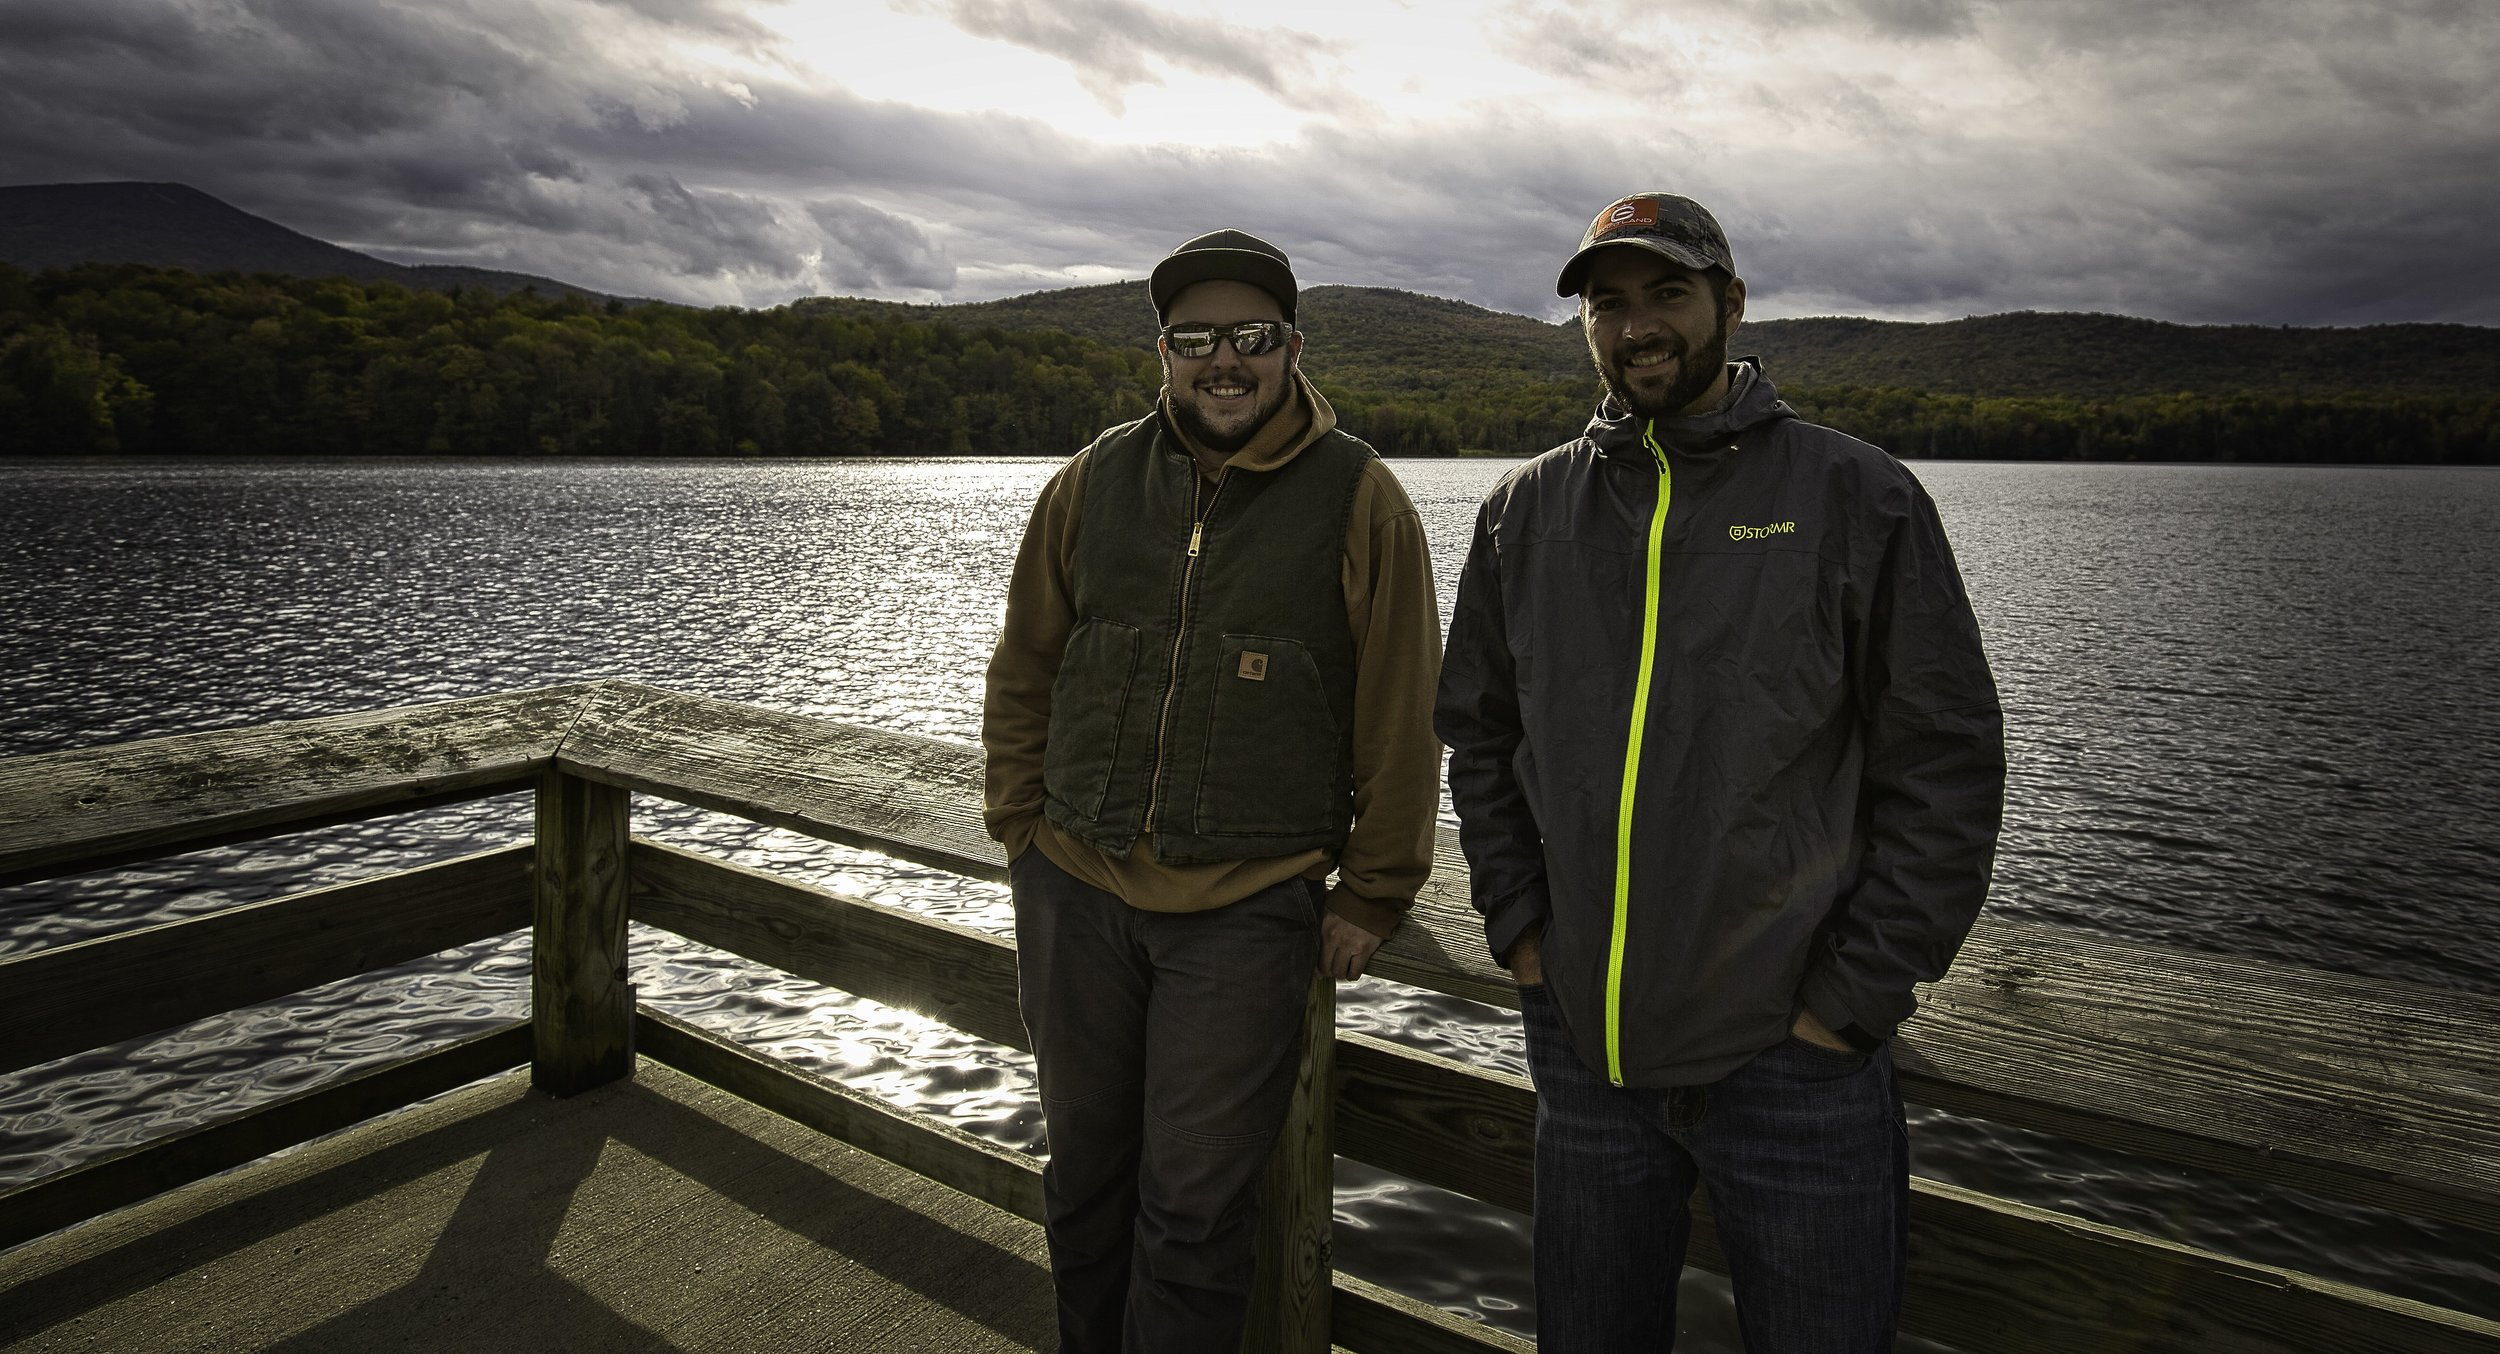 Kent Pond - The story of two friends who grew up fishing together on a small Vermont Pond…